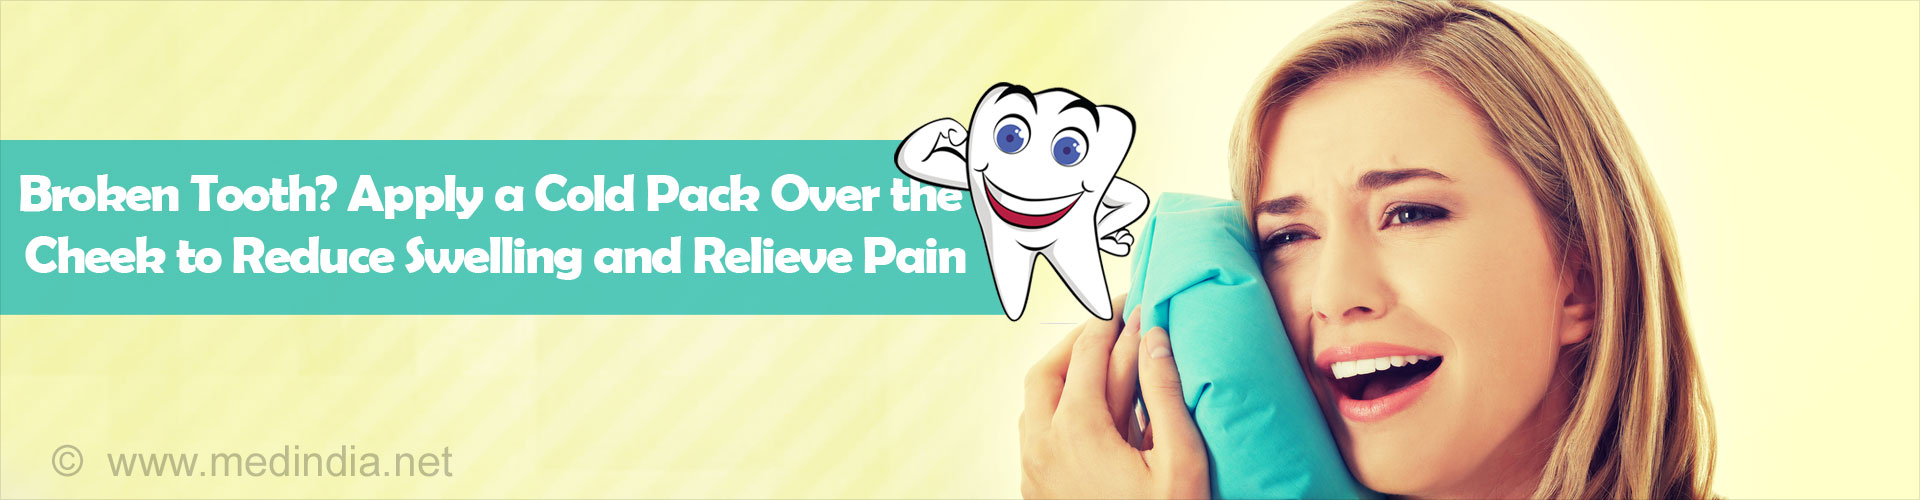 Home Remedies to Fix a Broken or Cracked Tooth